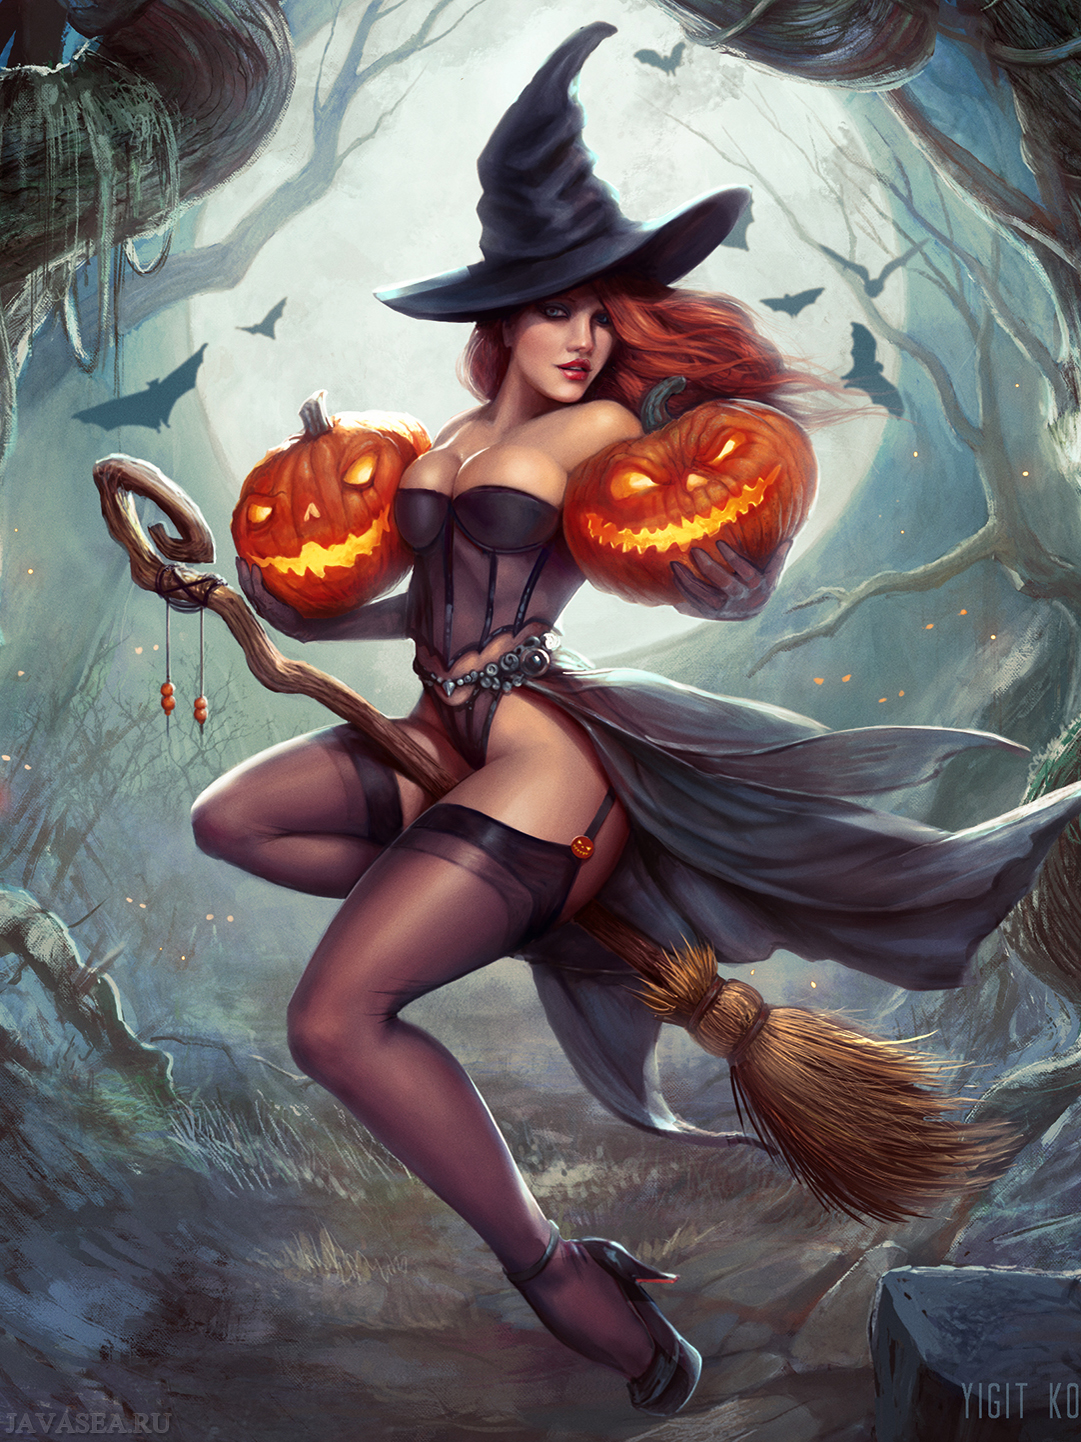 Nude Witch Pics